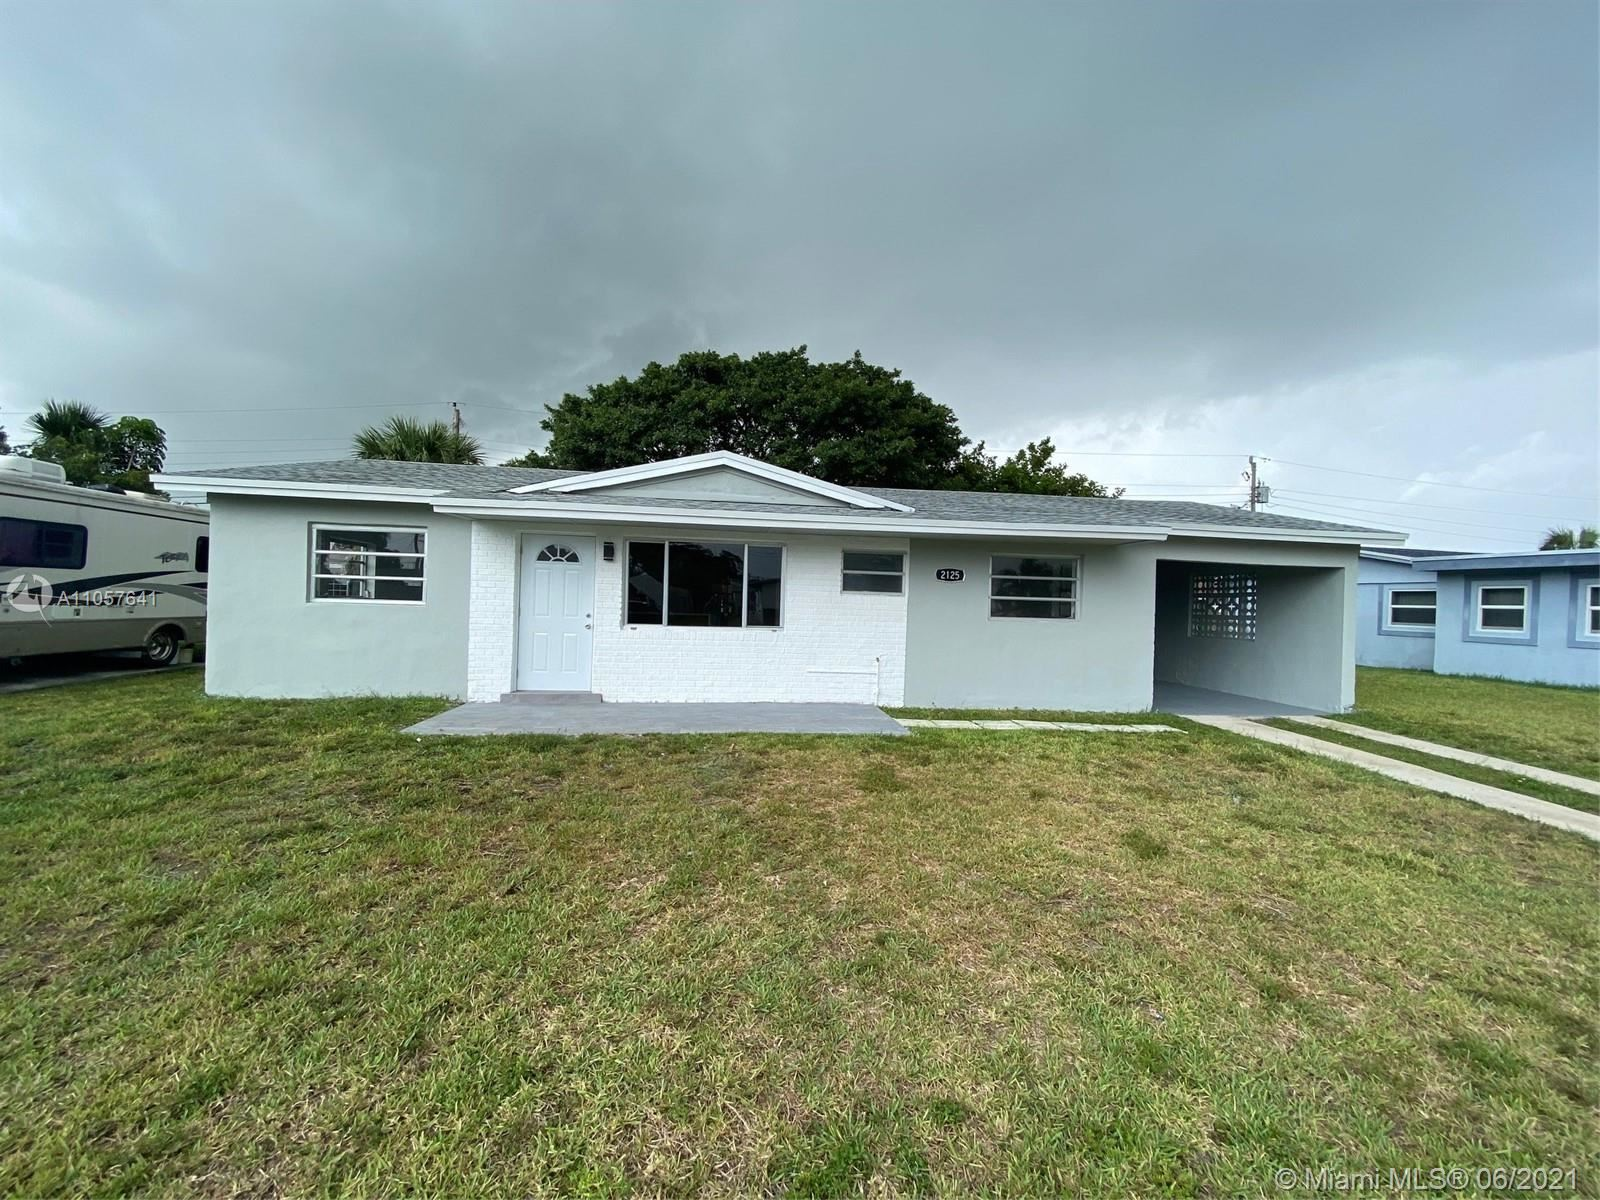 2125 NW 27th Ln, Fort Lauderdale, FL 33311 - #: A11057641